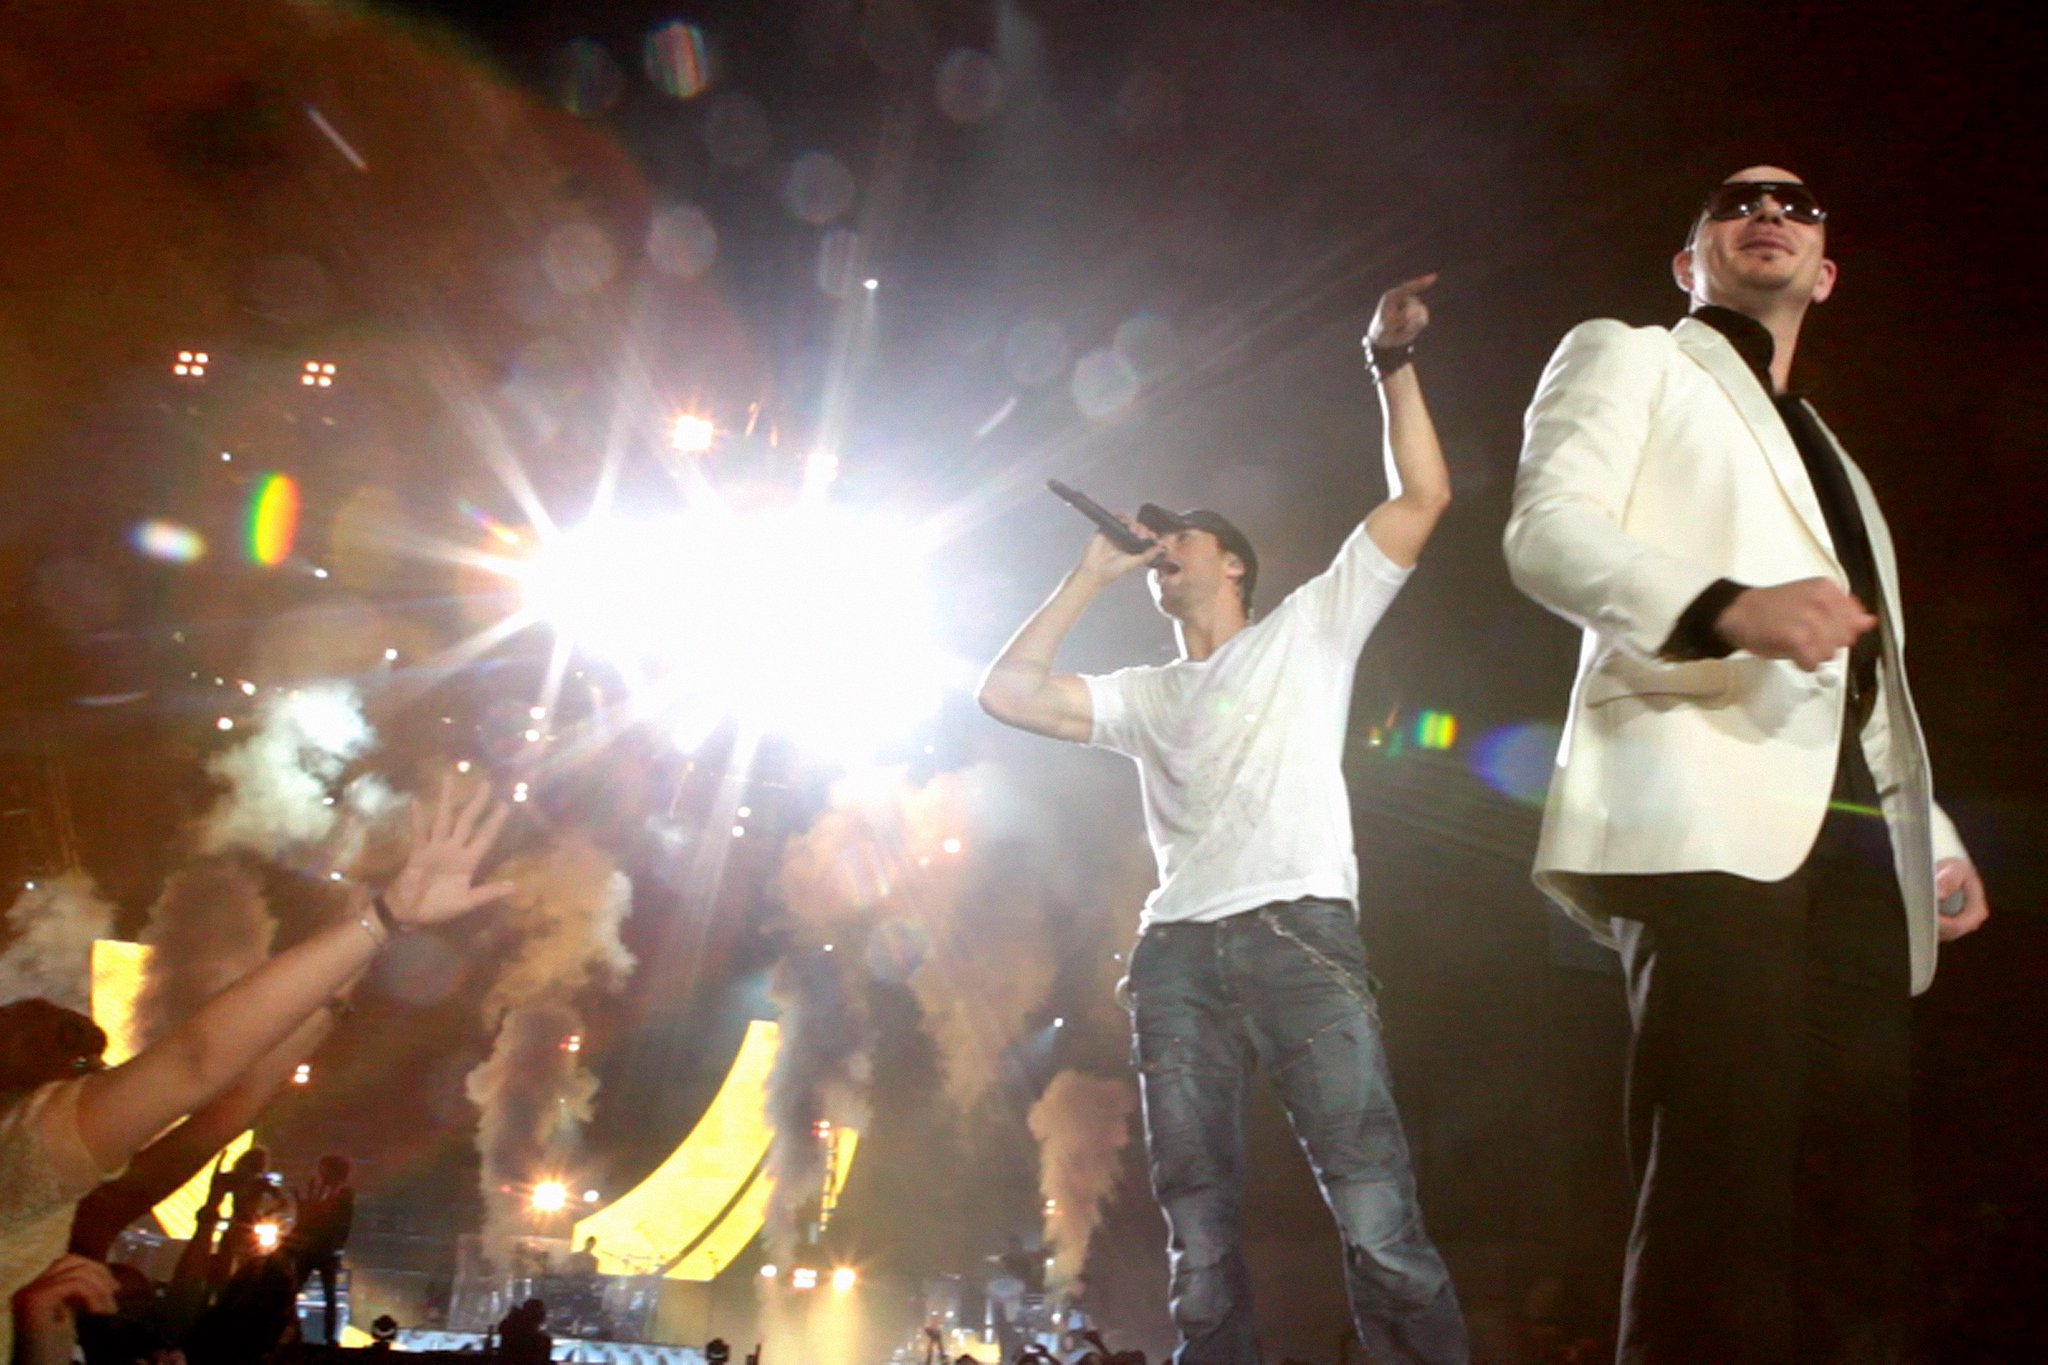 #TBT Getting ready to reunite onstage with @EnriqueIglesias #EnriquePitbullTour https://t.co/3KpJ8aorta